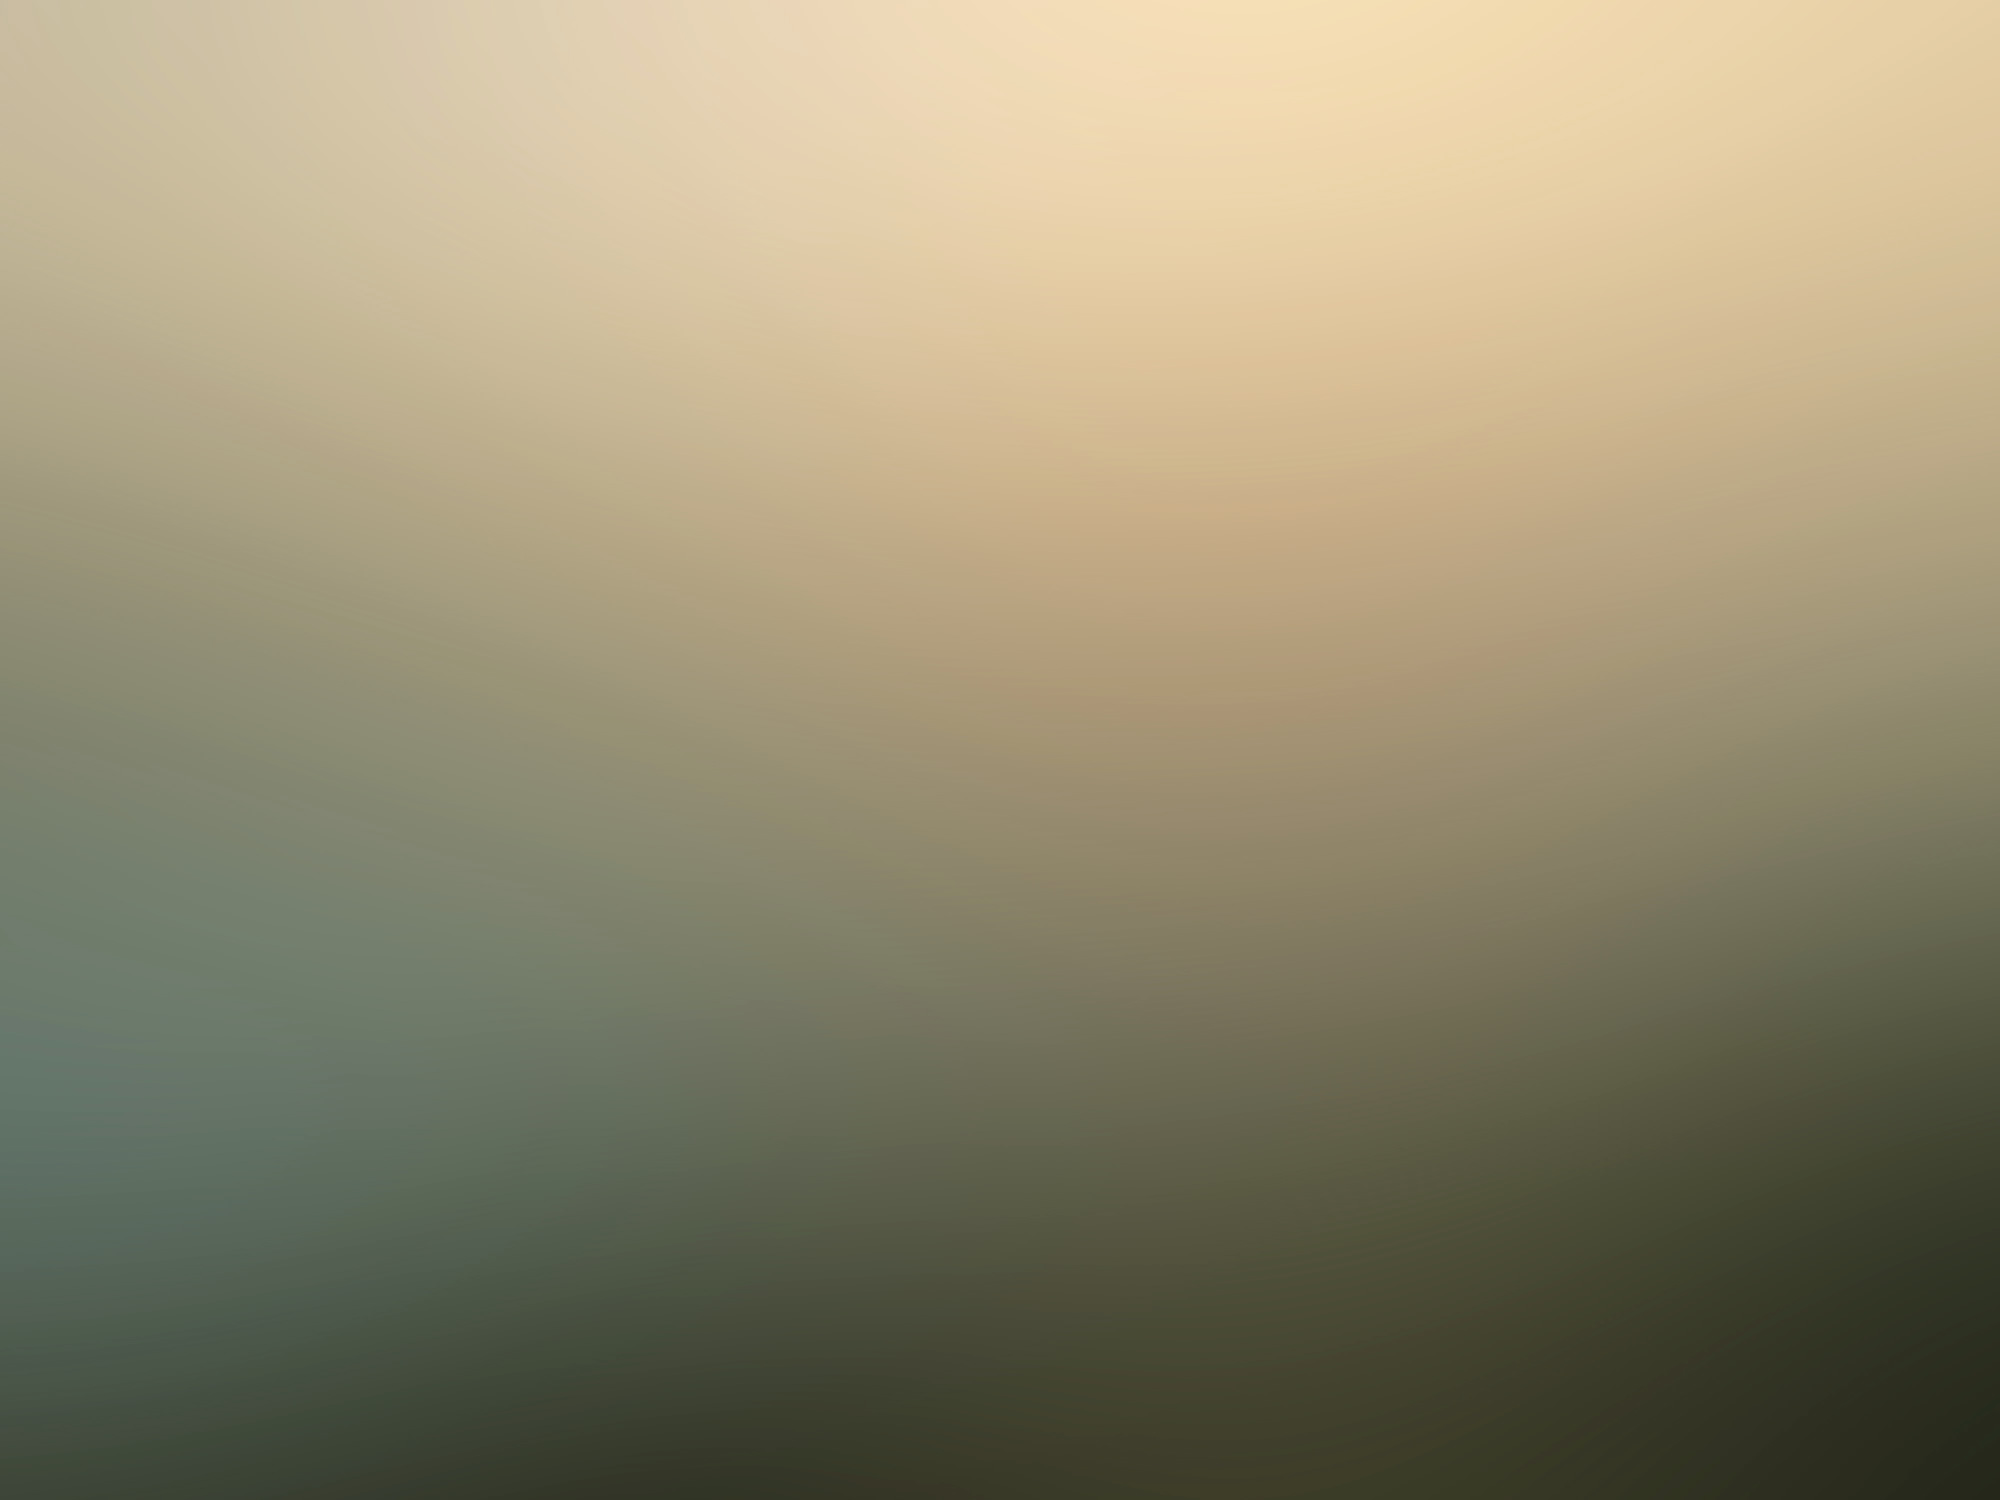 blurred-background-12